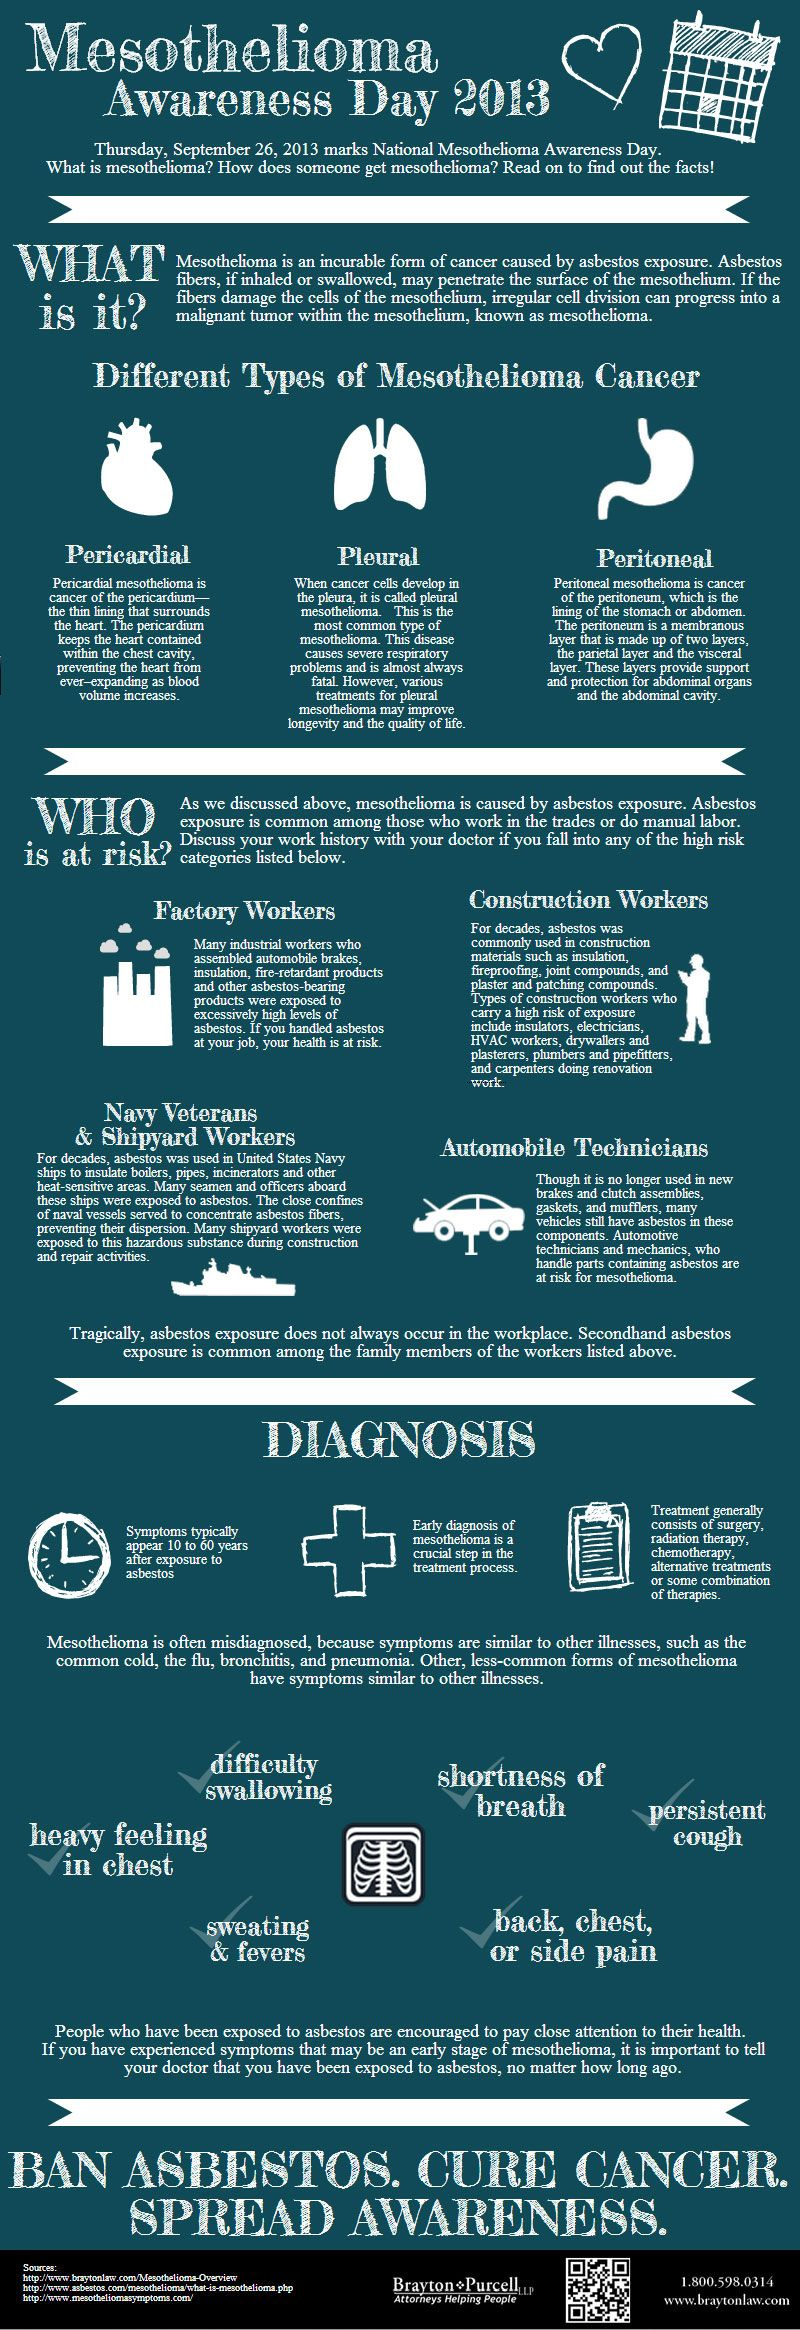 33++ Where asbestos is commonly found